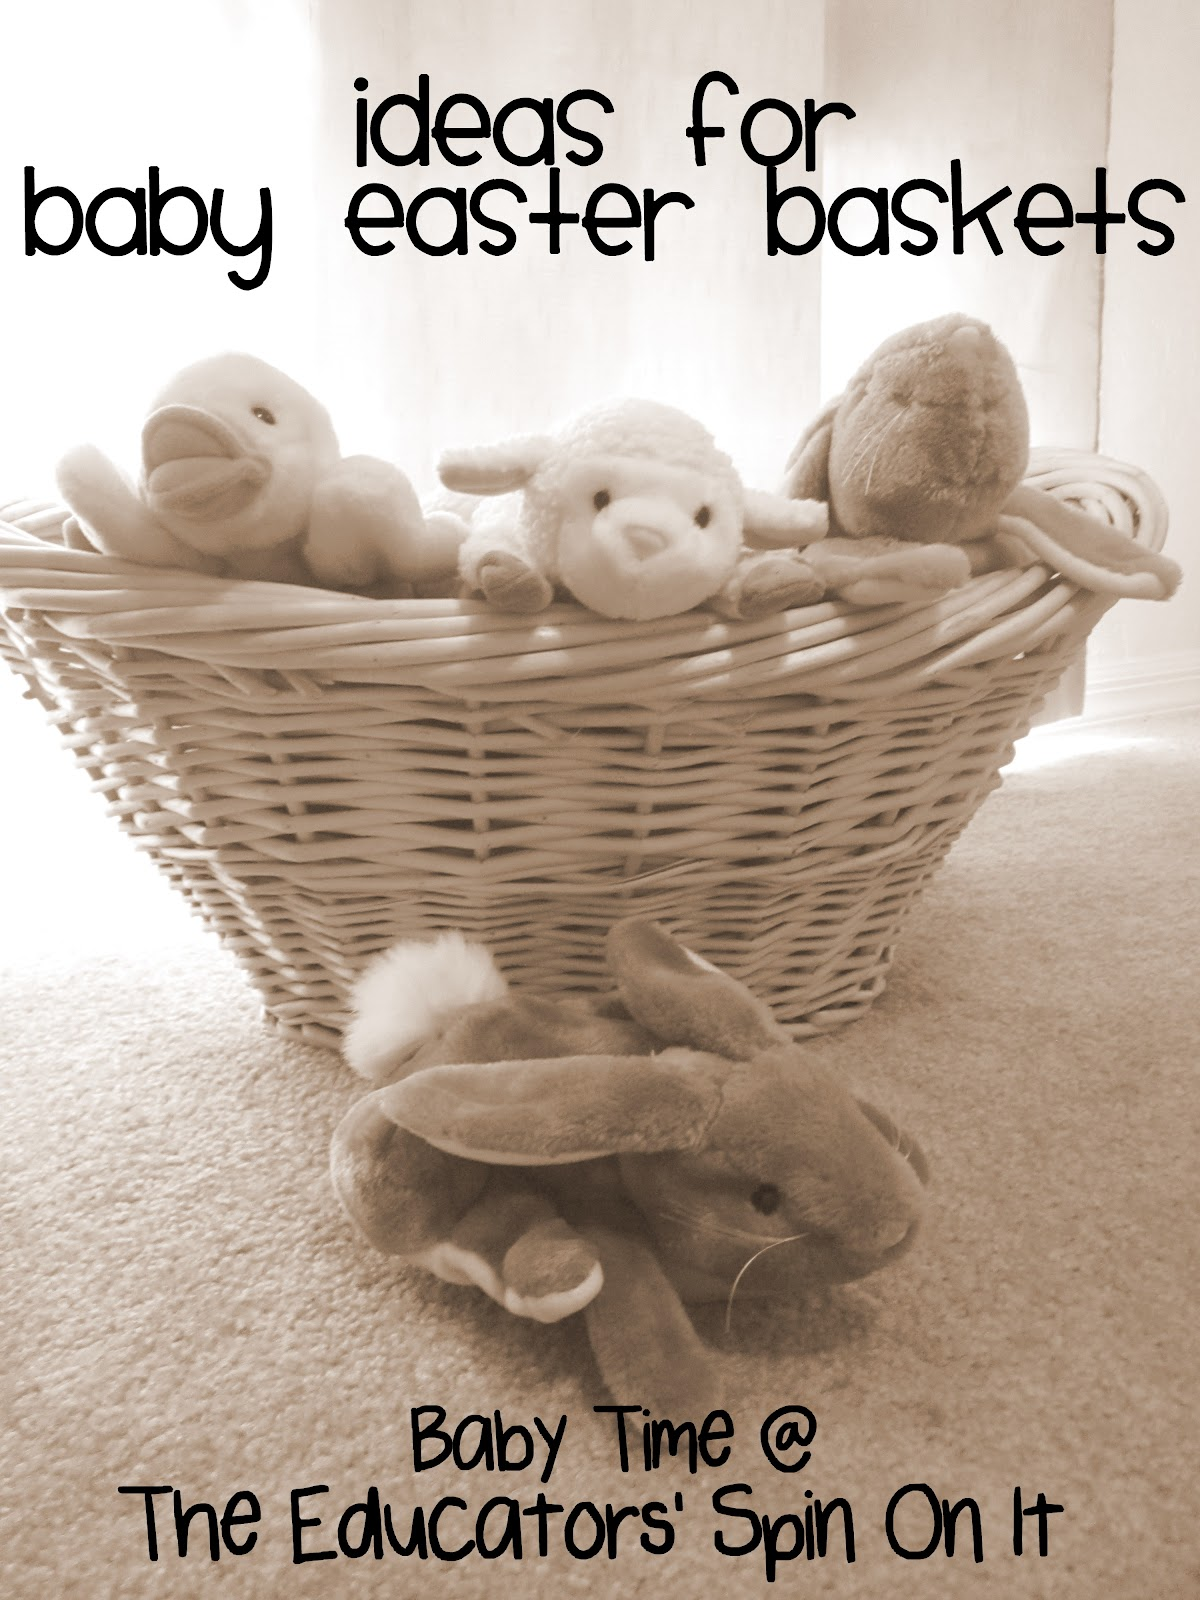 The educators spin on it ideas for easter baskets for babies